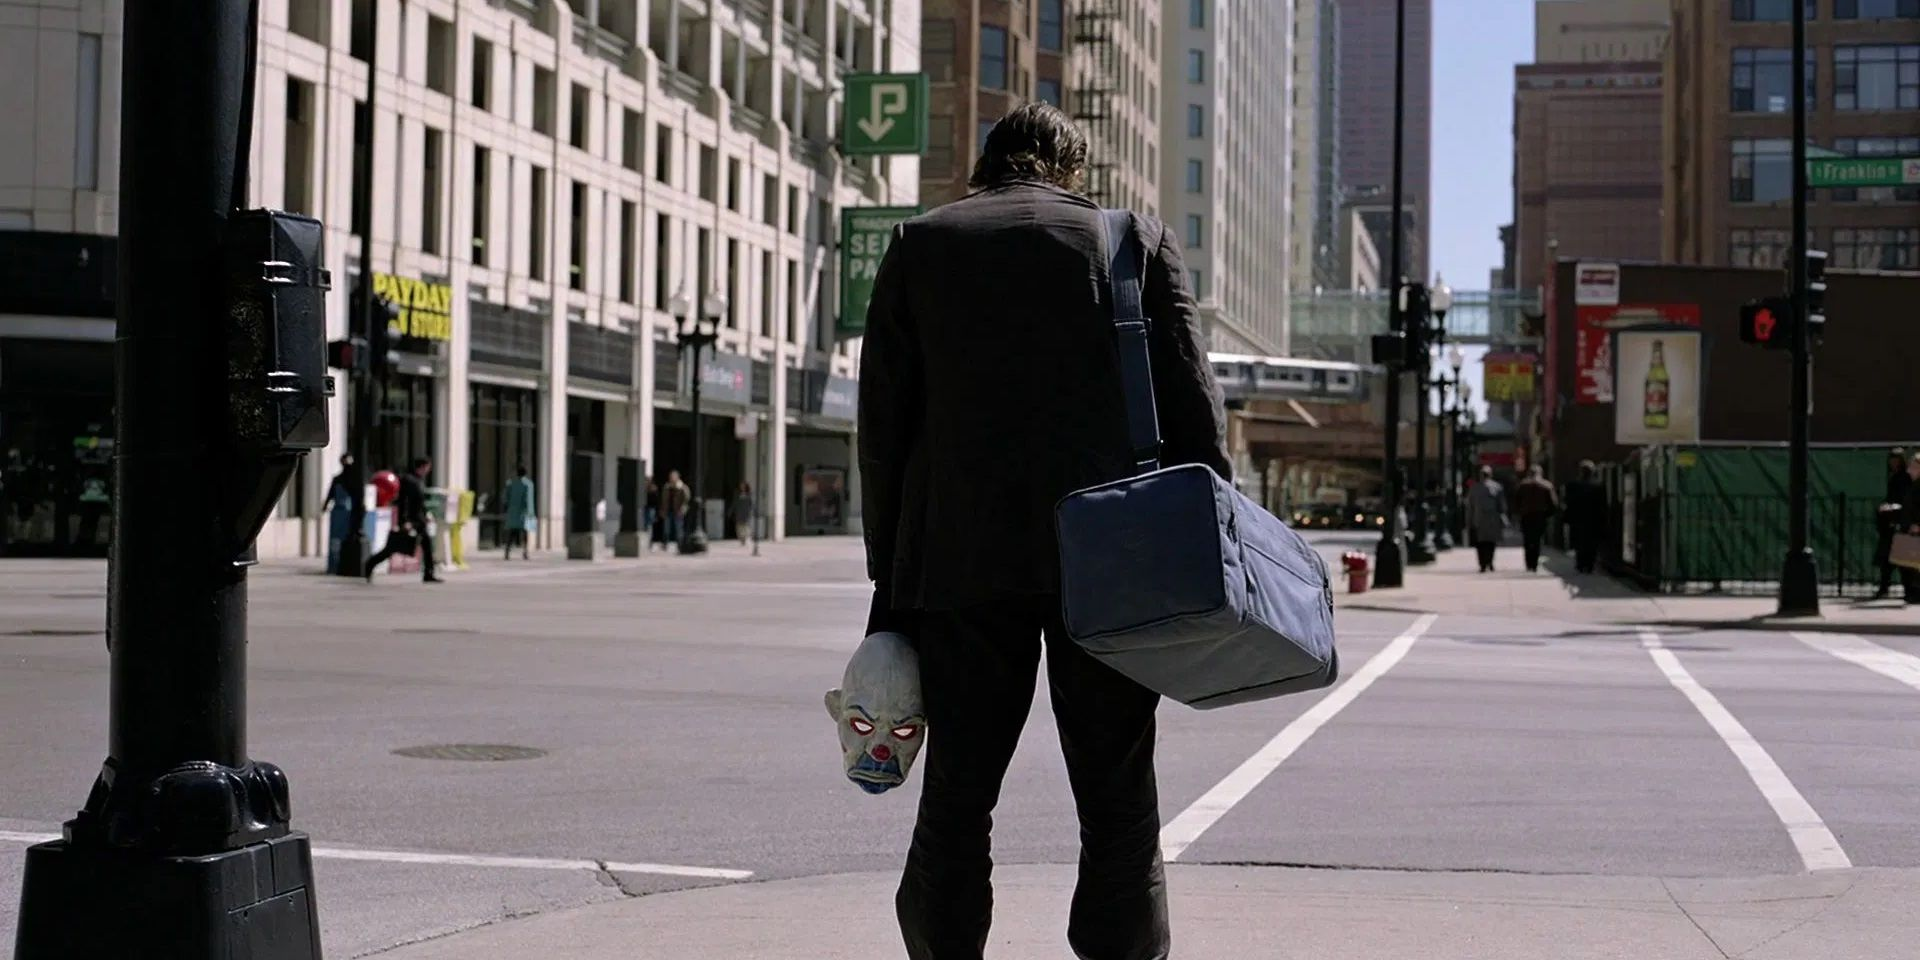 The Dark Knight: 5 Ways The Opening Scene Is Perfect (&5 The Ending Is)